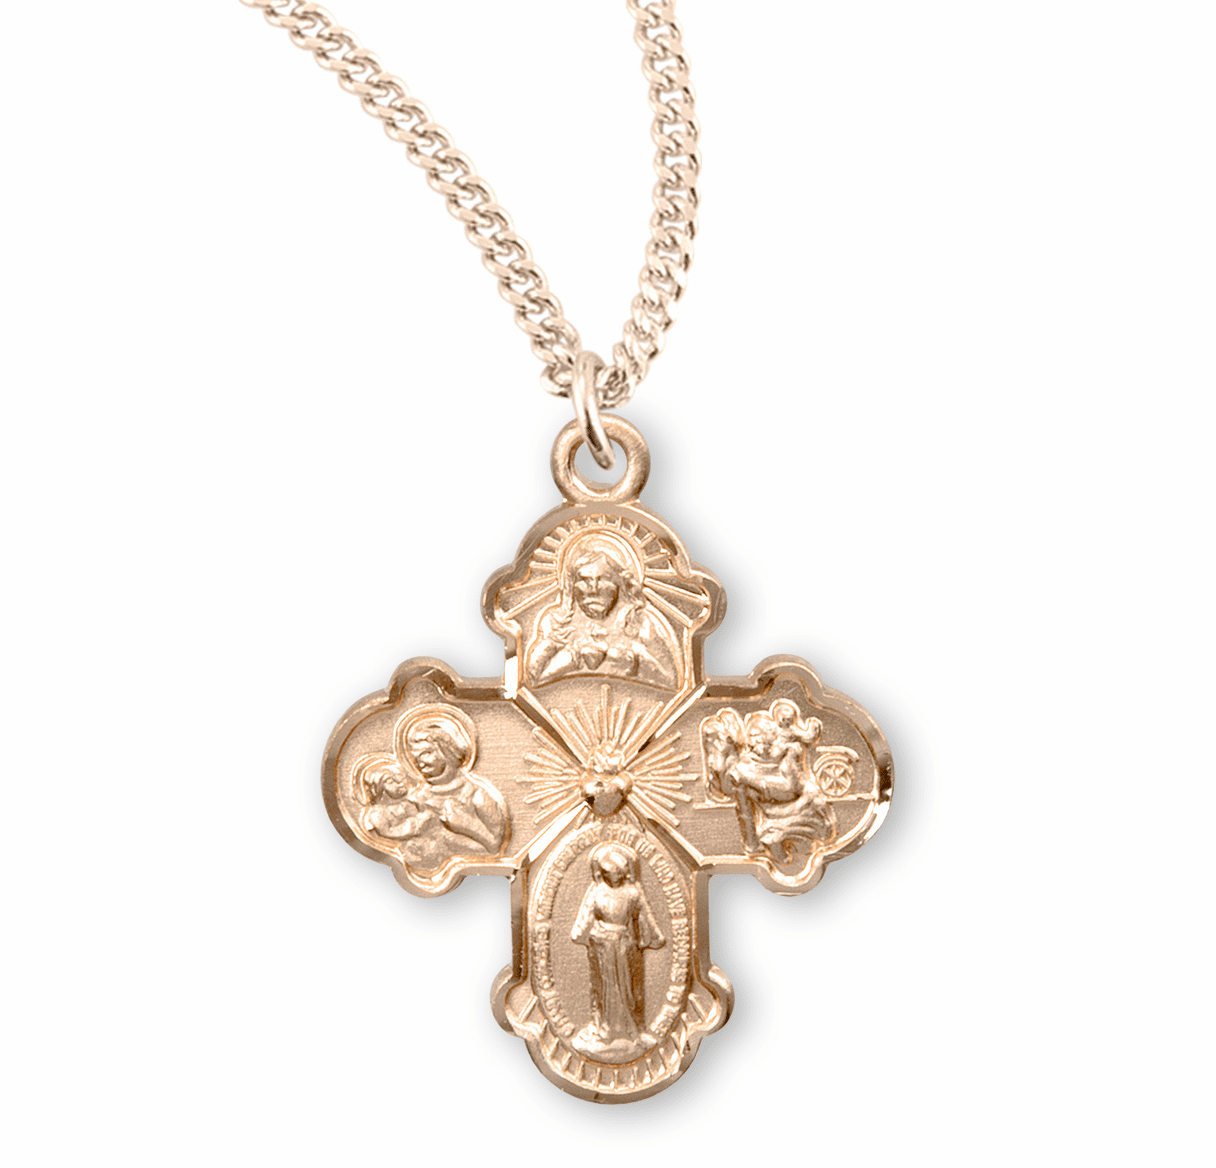 Small Four-Way Gold/Sterling Cross Medal Necklace by HMH Religious